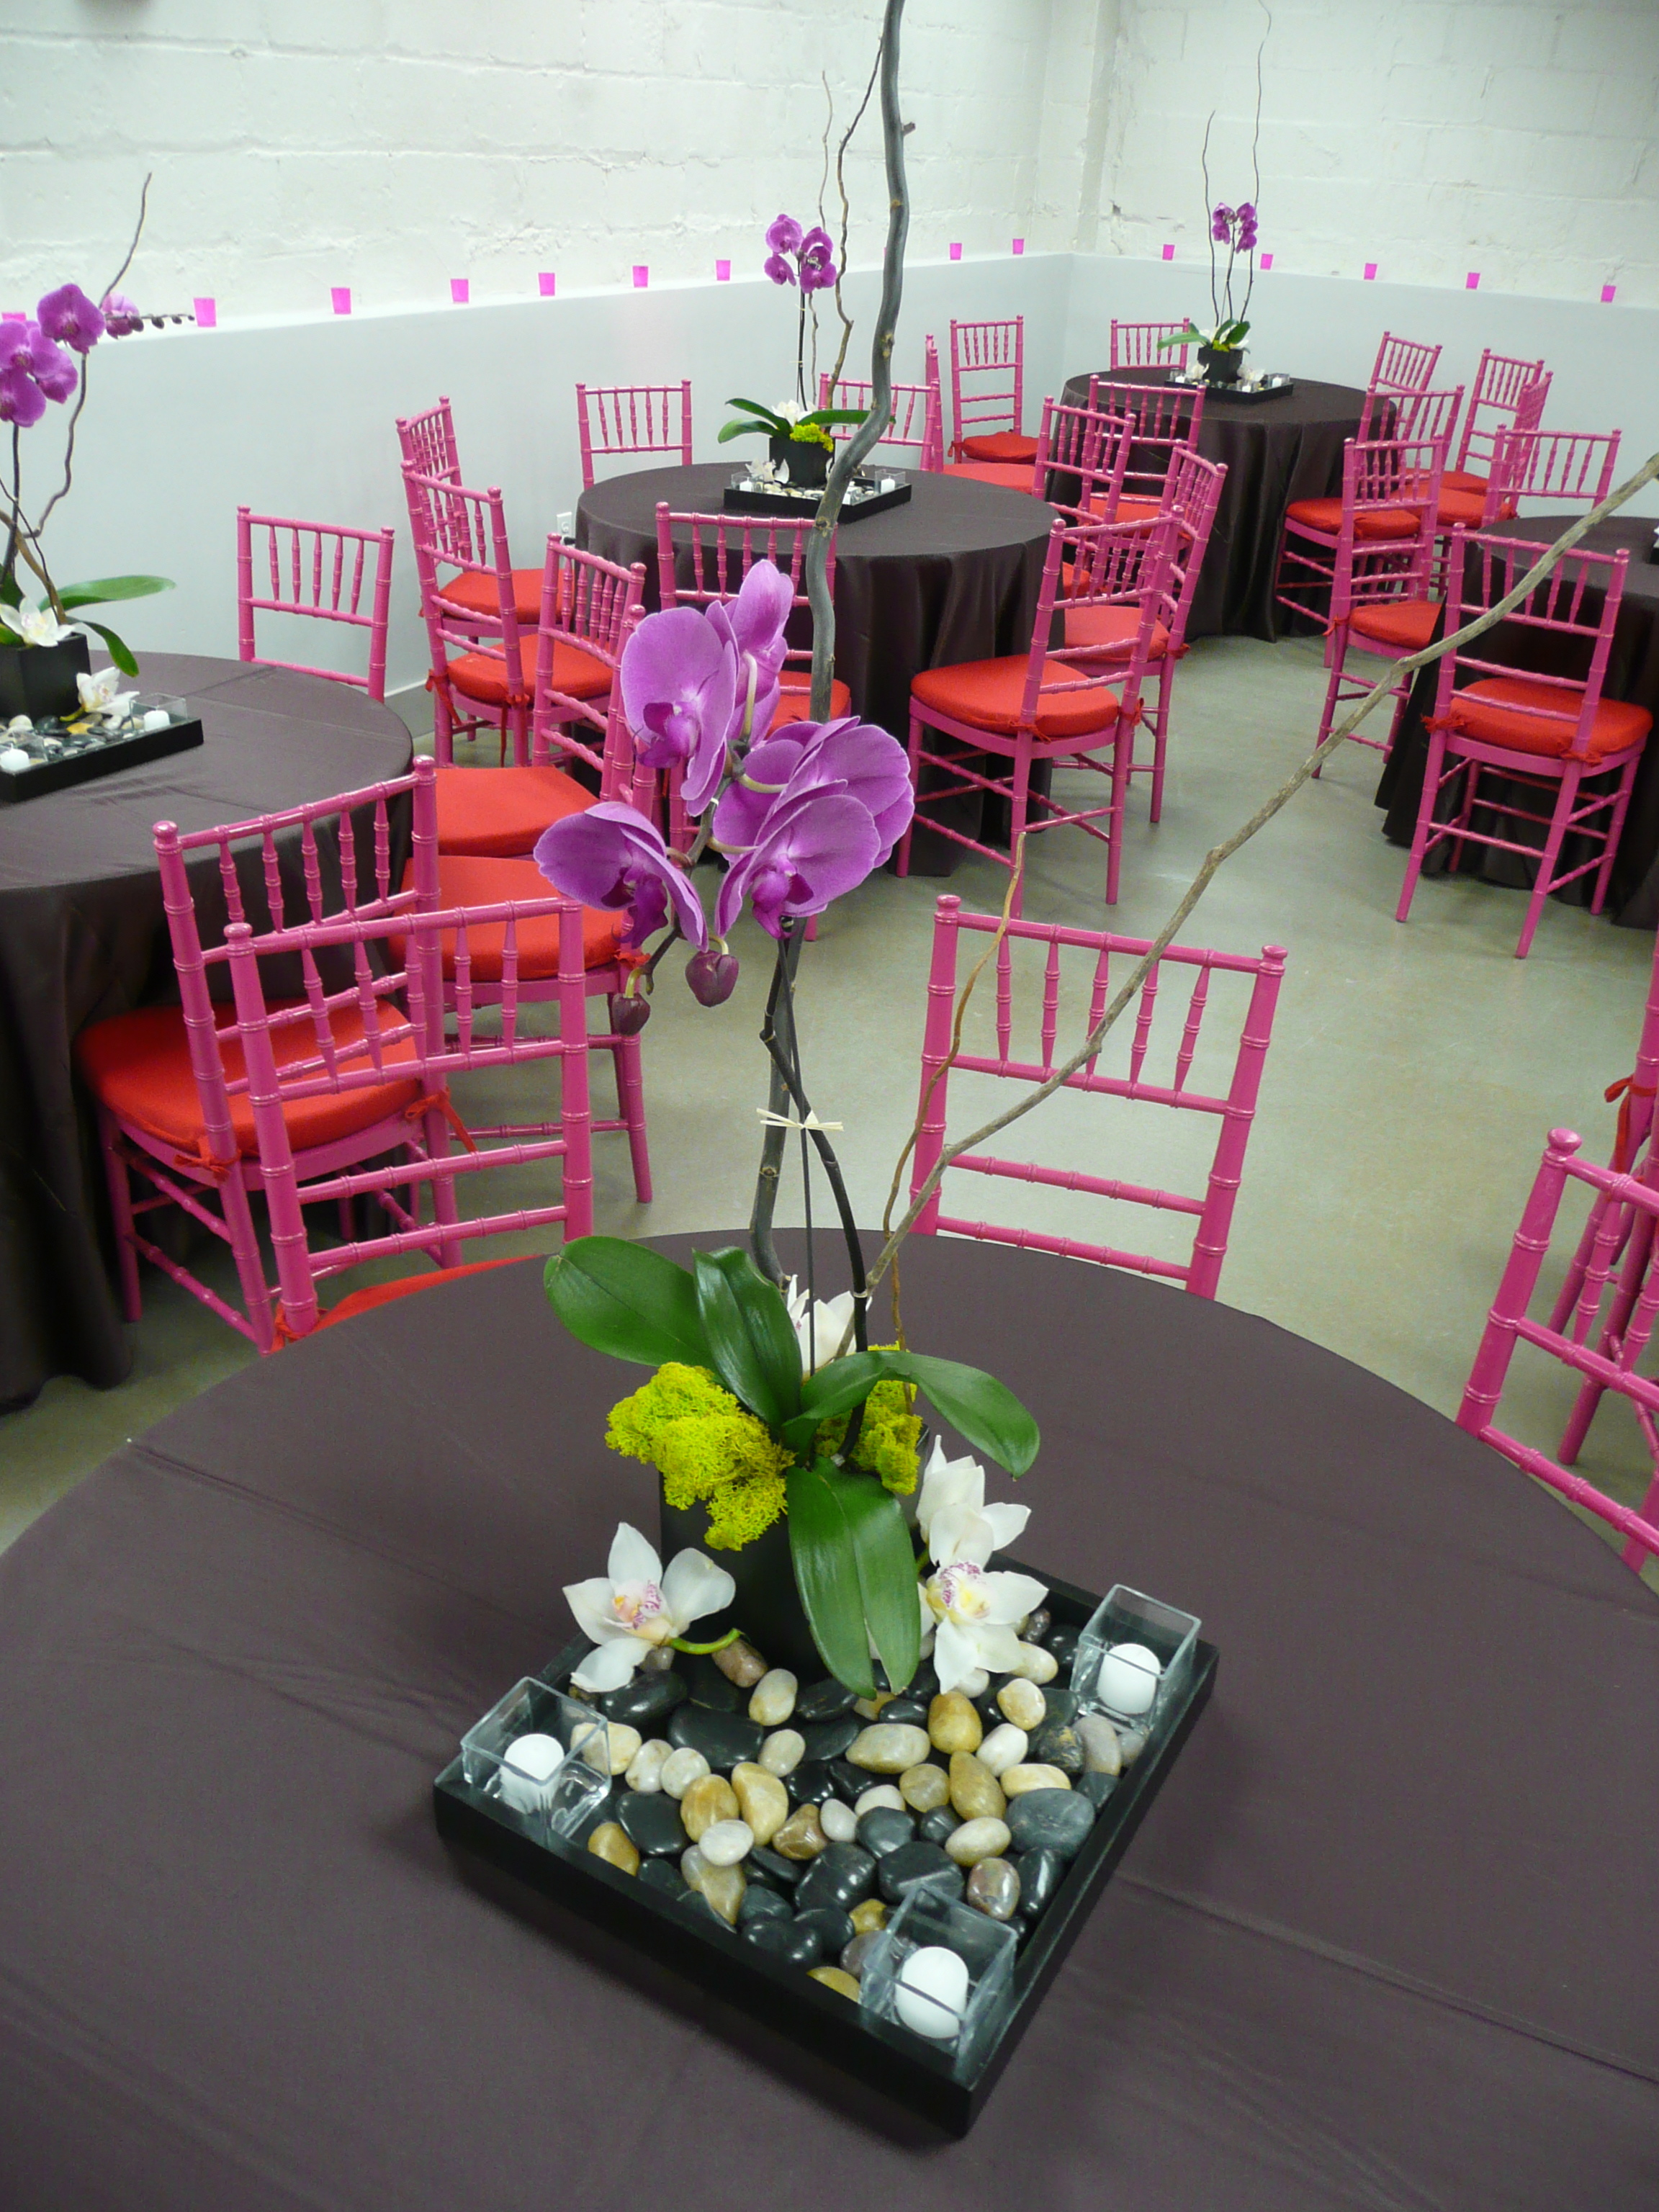 NJ+centerpiece+rental+NY+bat+mitzvah+decorations+PA+bar+mitzvahs+design+planner+centerpiece+rentals+eggsotic+events.jpg